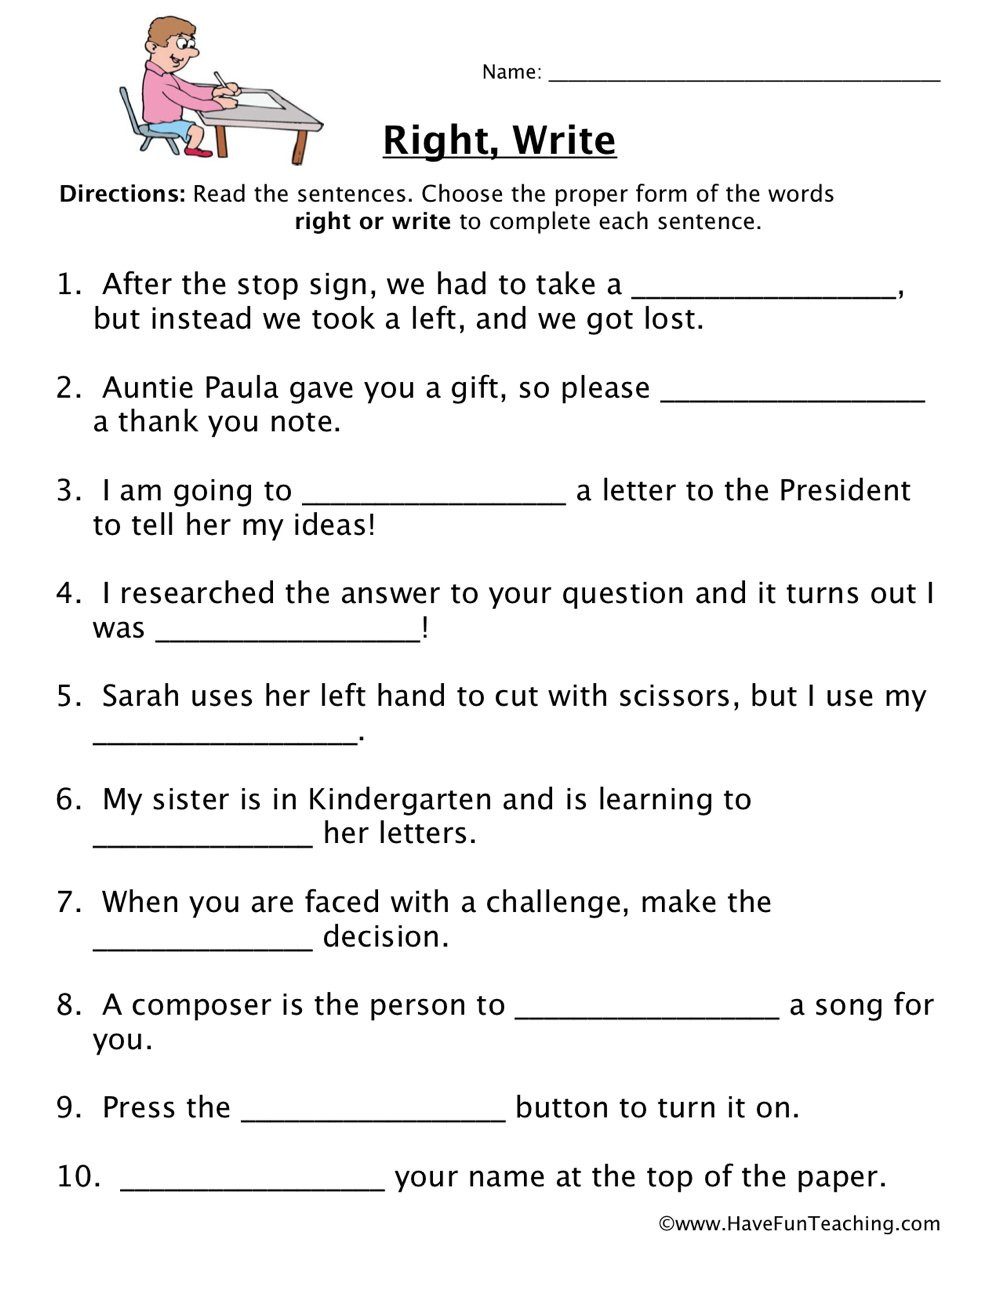 Homophone Worksheet 4th Grade Right Write Homophones Worksheet